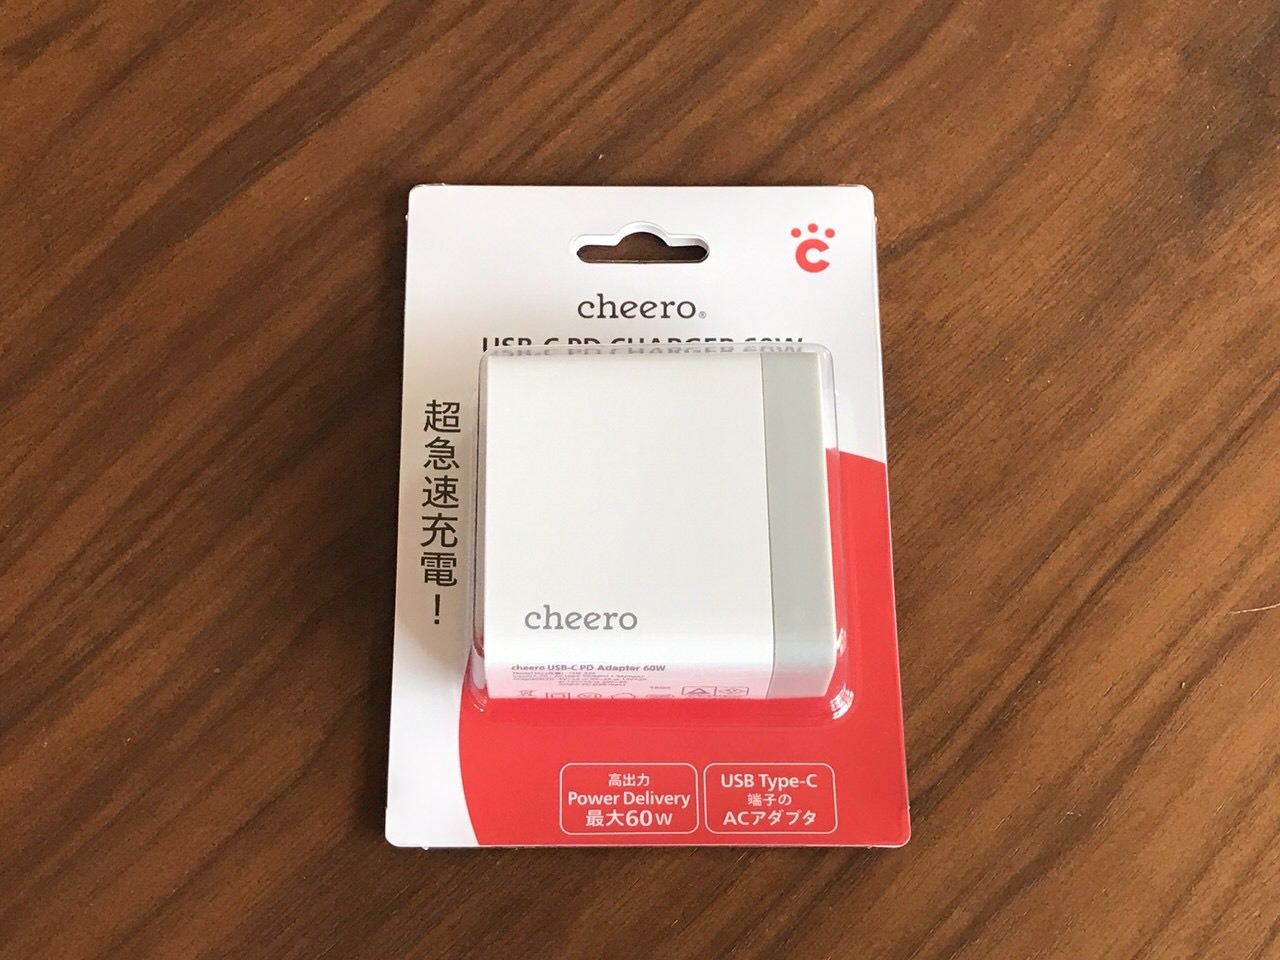 Power Delivery(PD)最大60W対応のACアダプタ「cheero USB-C PD Charger 60W」